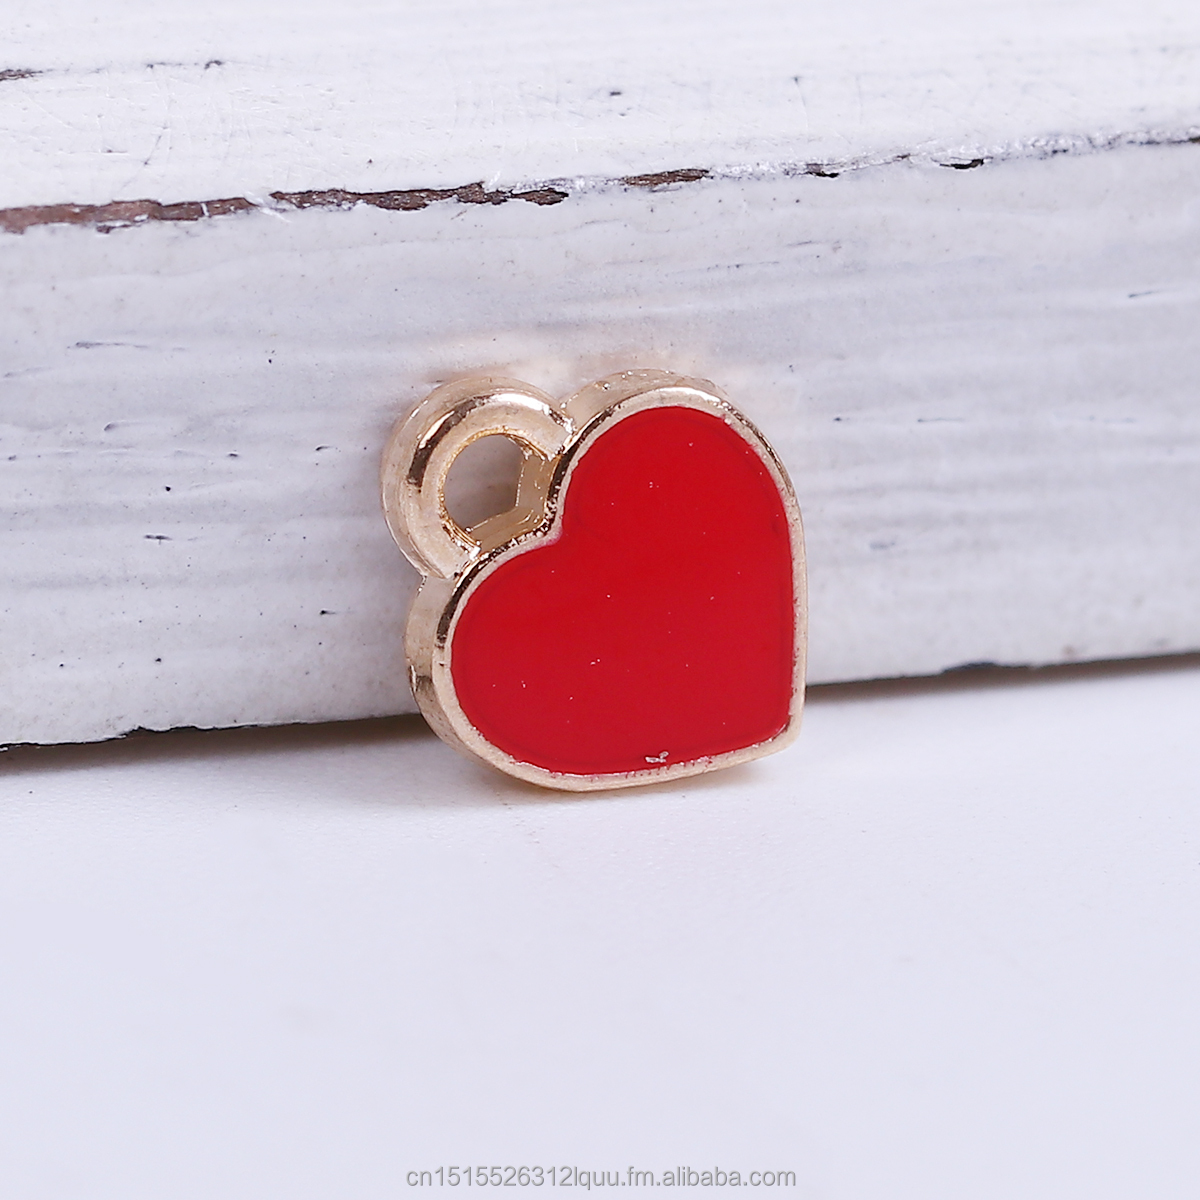 Zinc Based Alloy Poker/Paper Card/Game Card <strong>Charms</strong> Gold Plated Red Heart Enamel